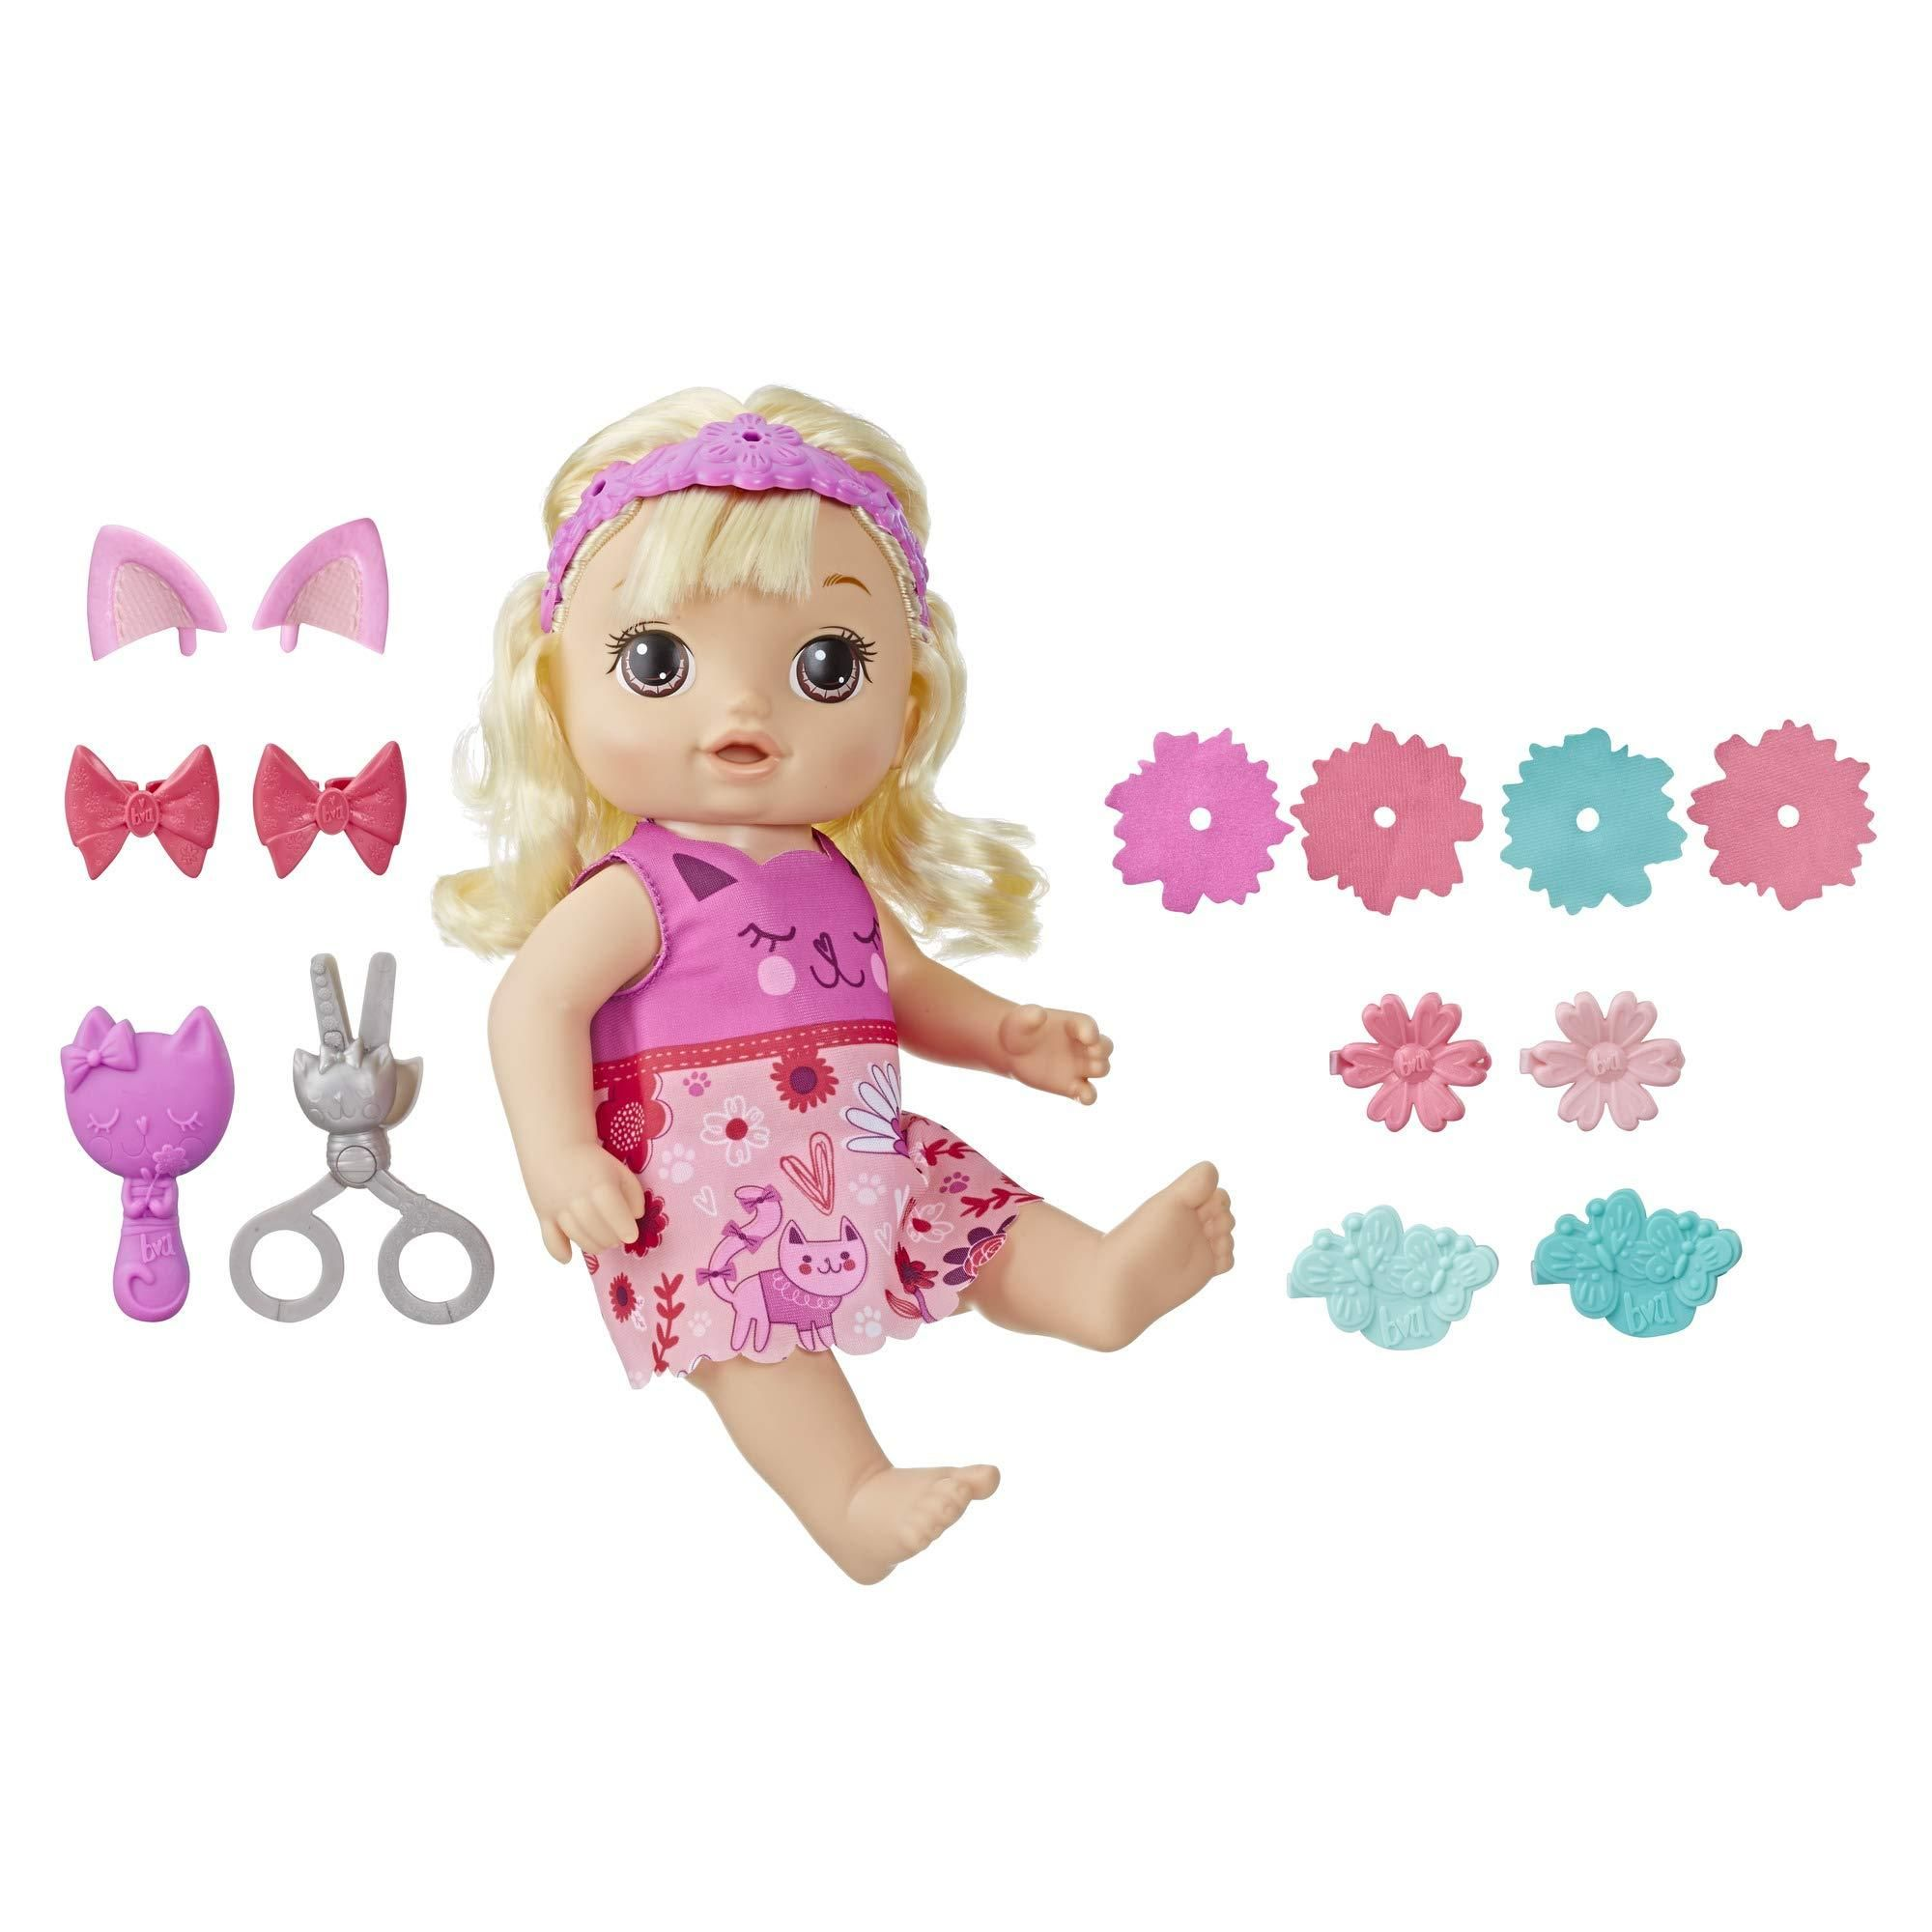 Baby Alive Snip An Style Baby Blonde Hair Talking Doll With Bangs That Grow Then Get Shorter Toy Doll For Kids Ages 3 Years Old And Up In 2020 Baby Alive Baby Blonde Hair Baby Alive Dolls